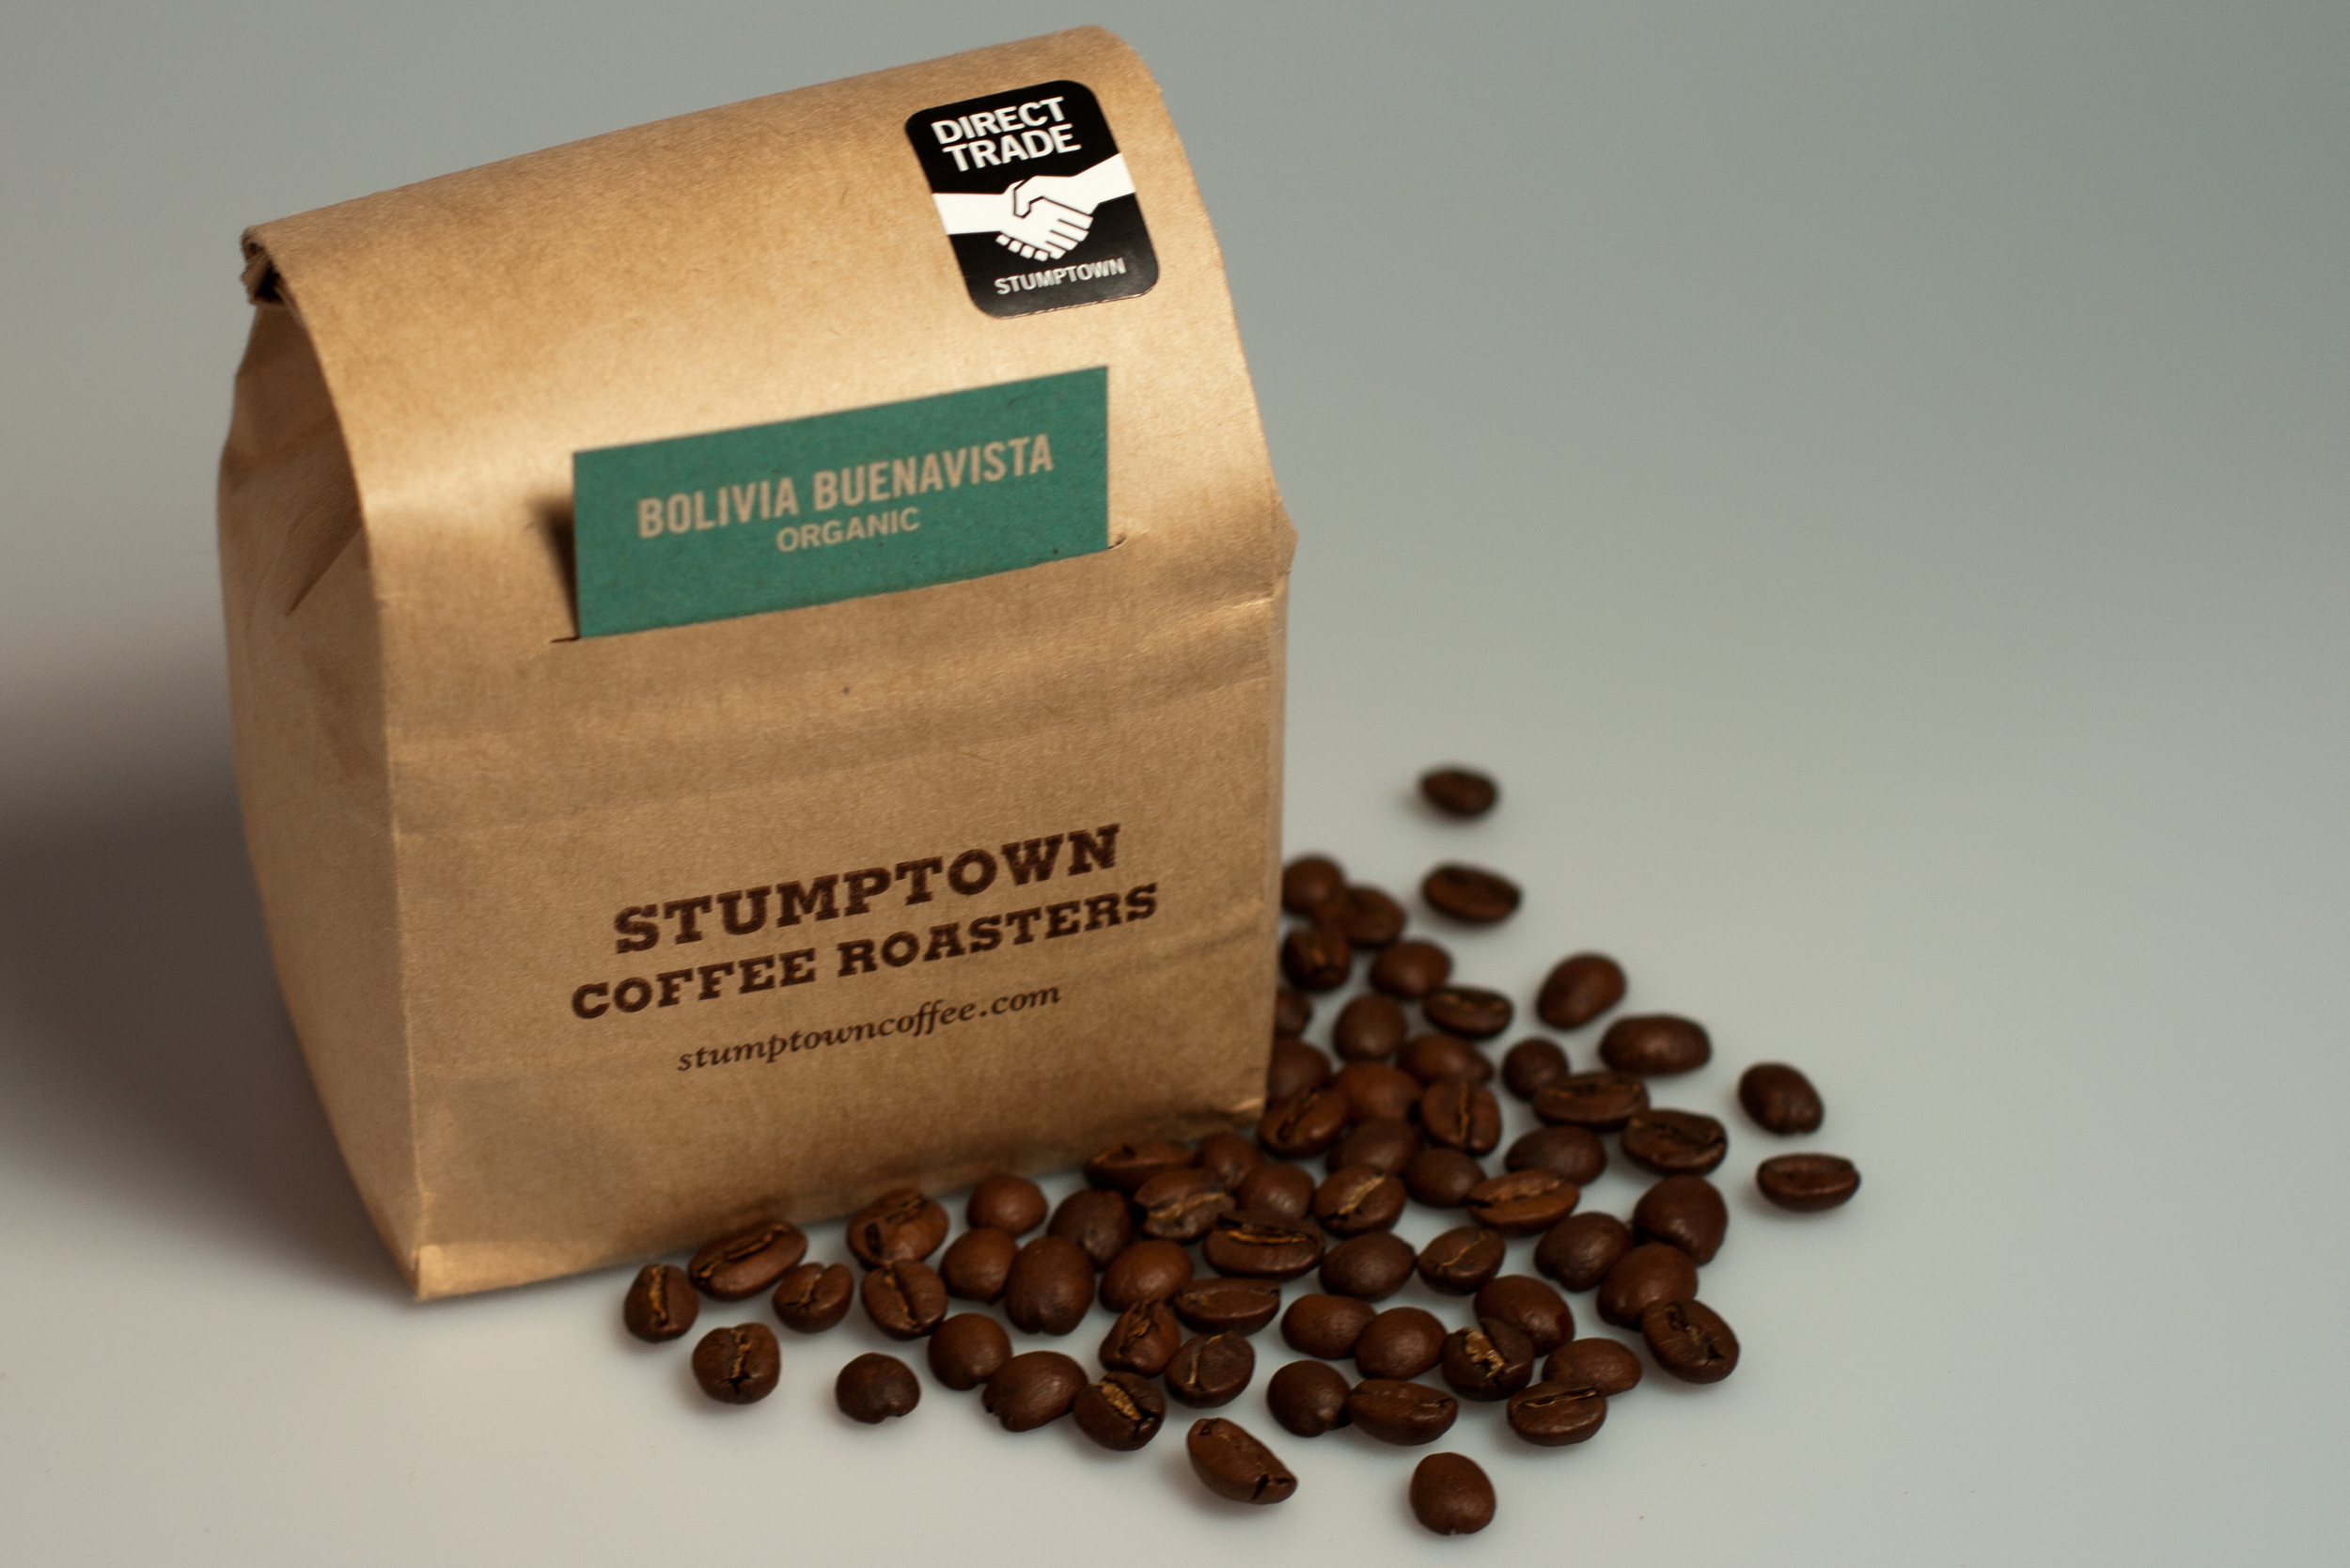 Stumptown Bolivia Buenavista Direct Trade Organic